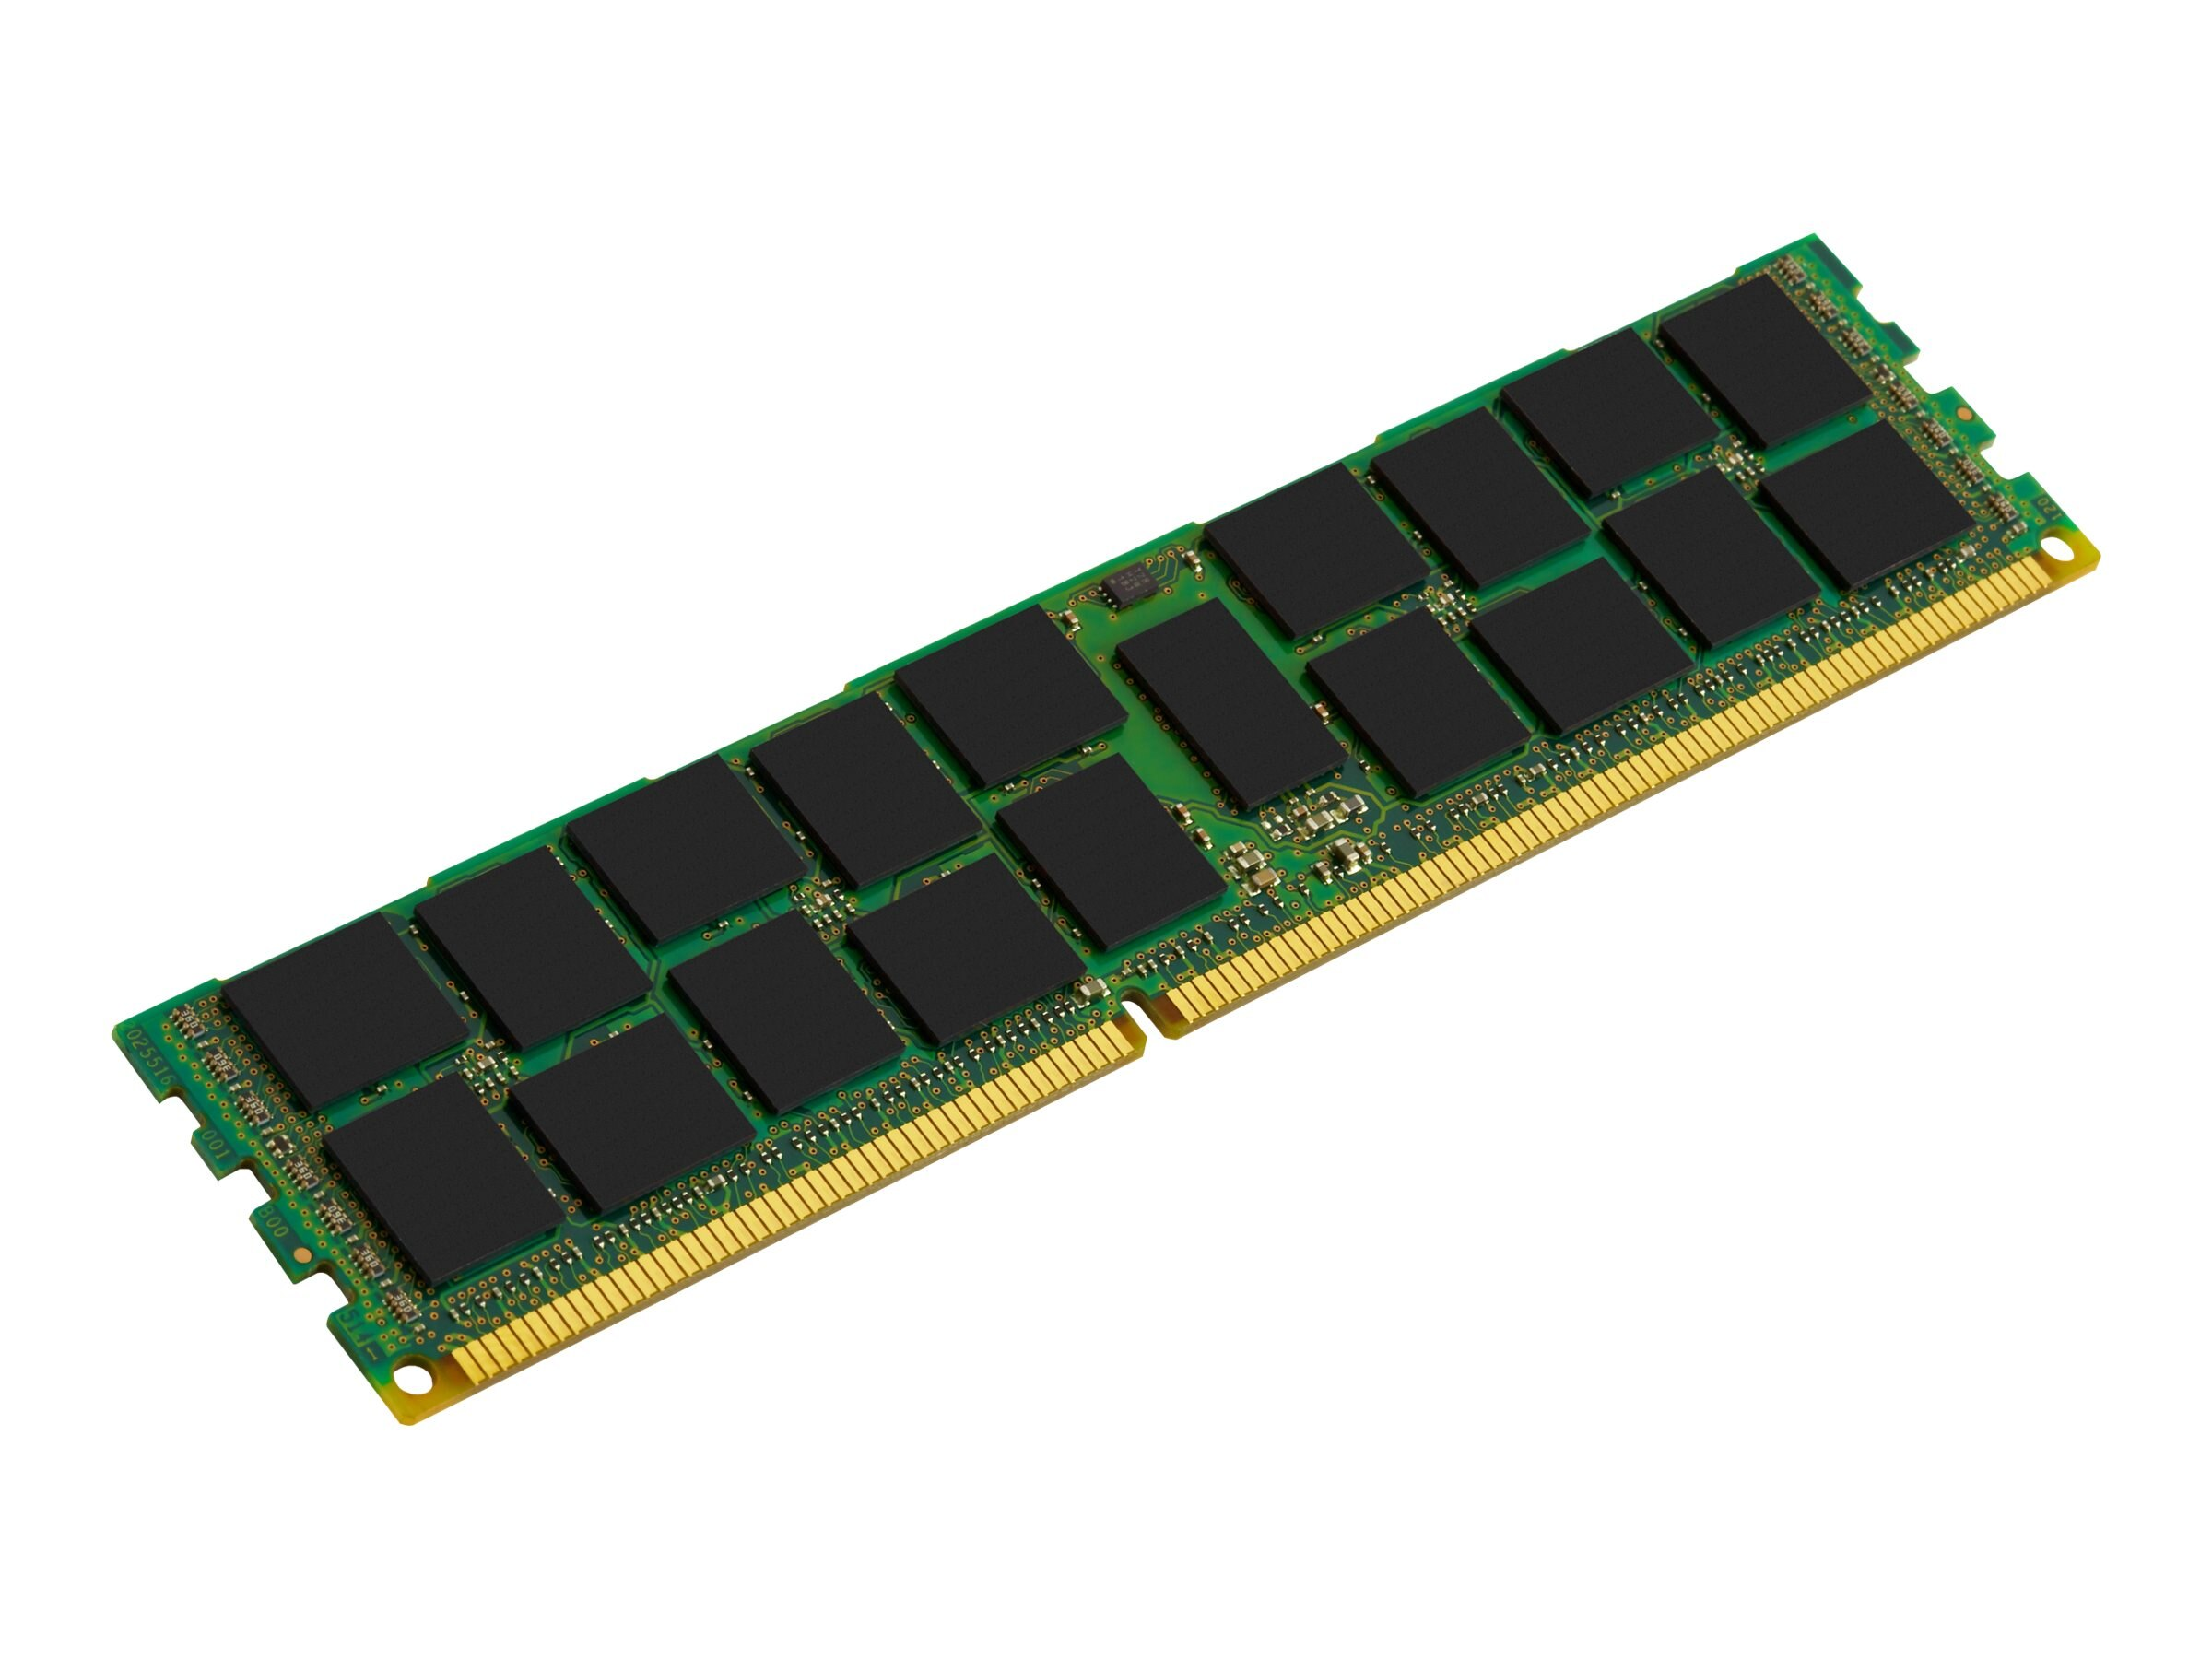 Kingston 16GB PC3-12800 240-pin DDR3 SDRAM RDIMM for Select Models